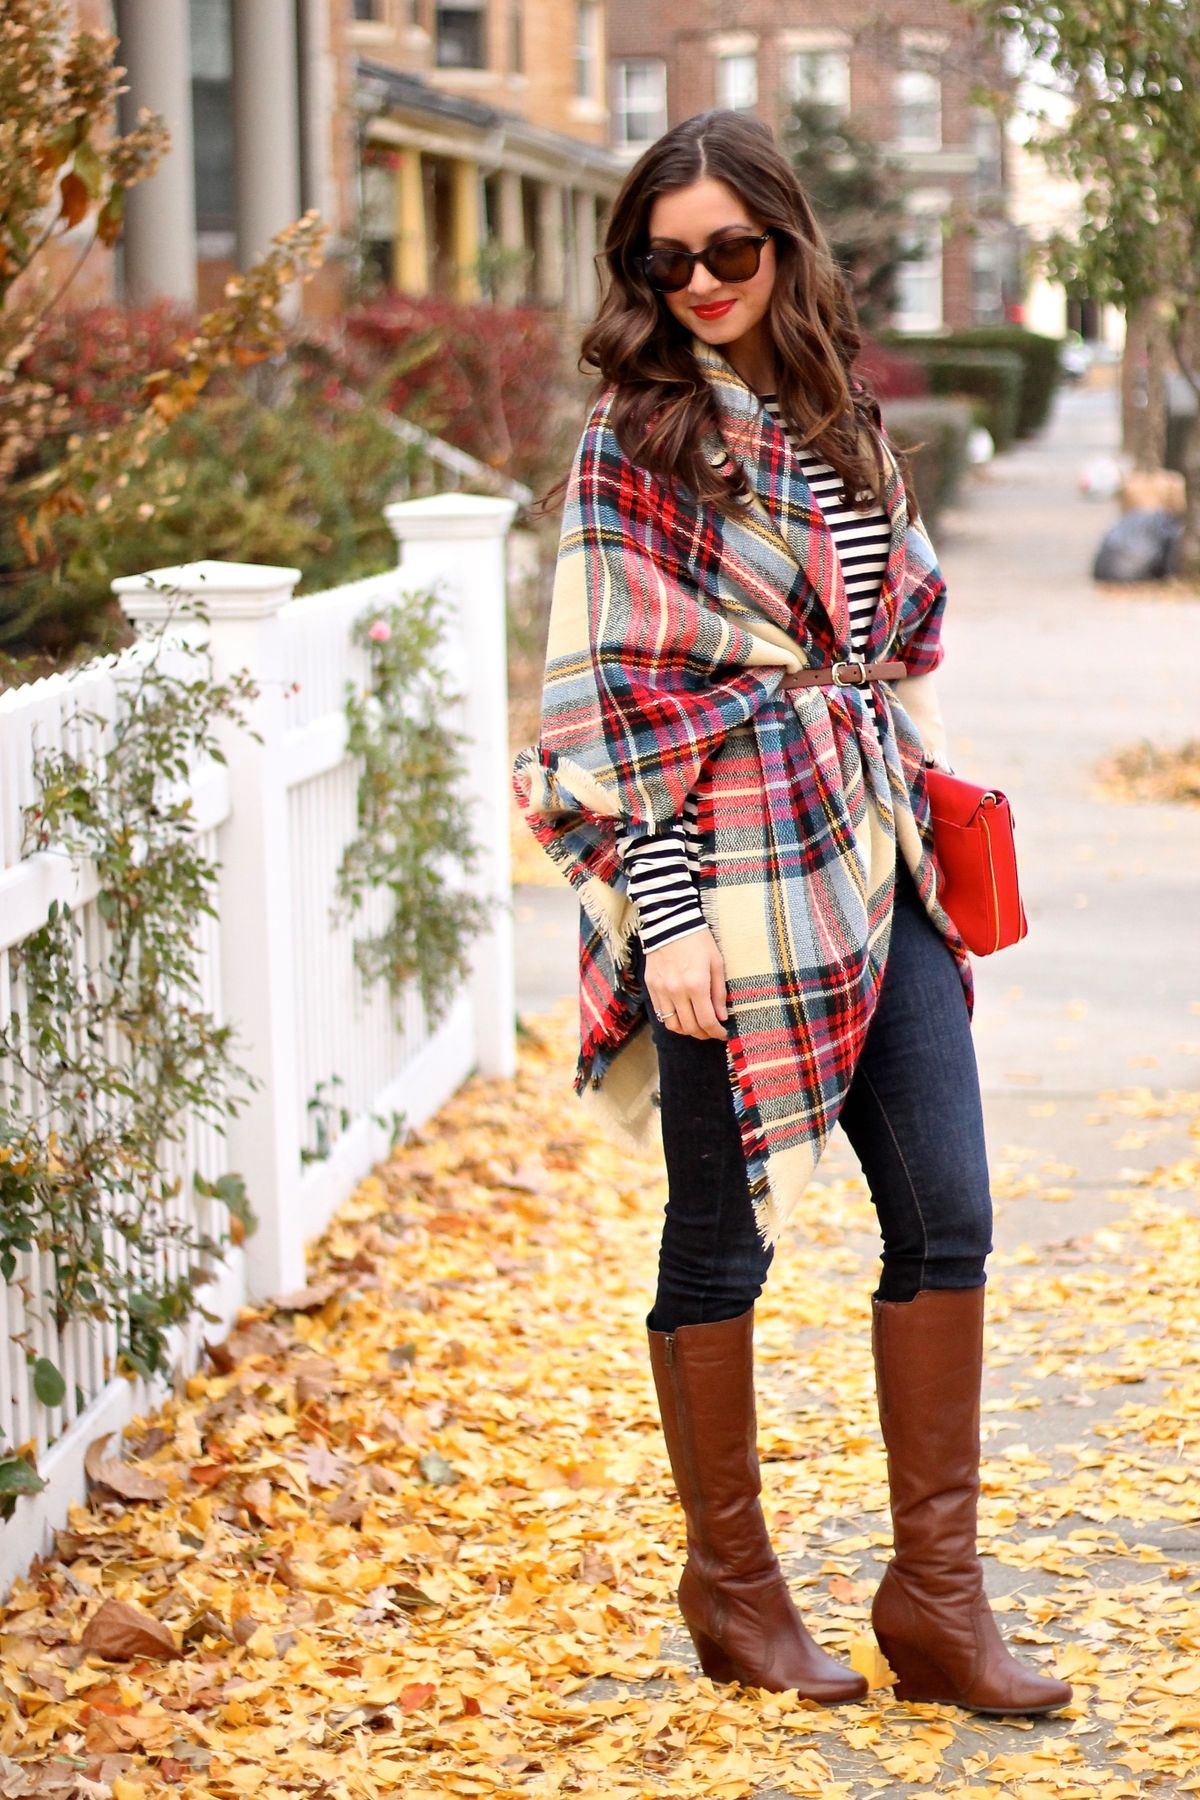 Cognac Boots Outfits For Winter 12 Ways To Wear Them With